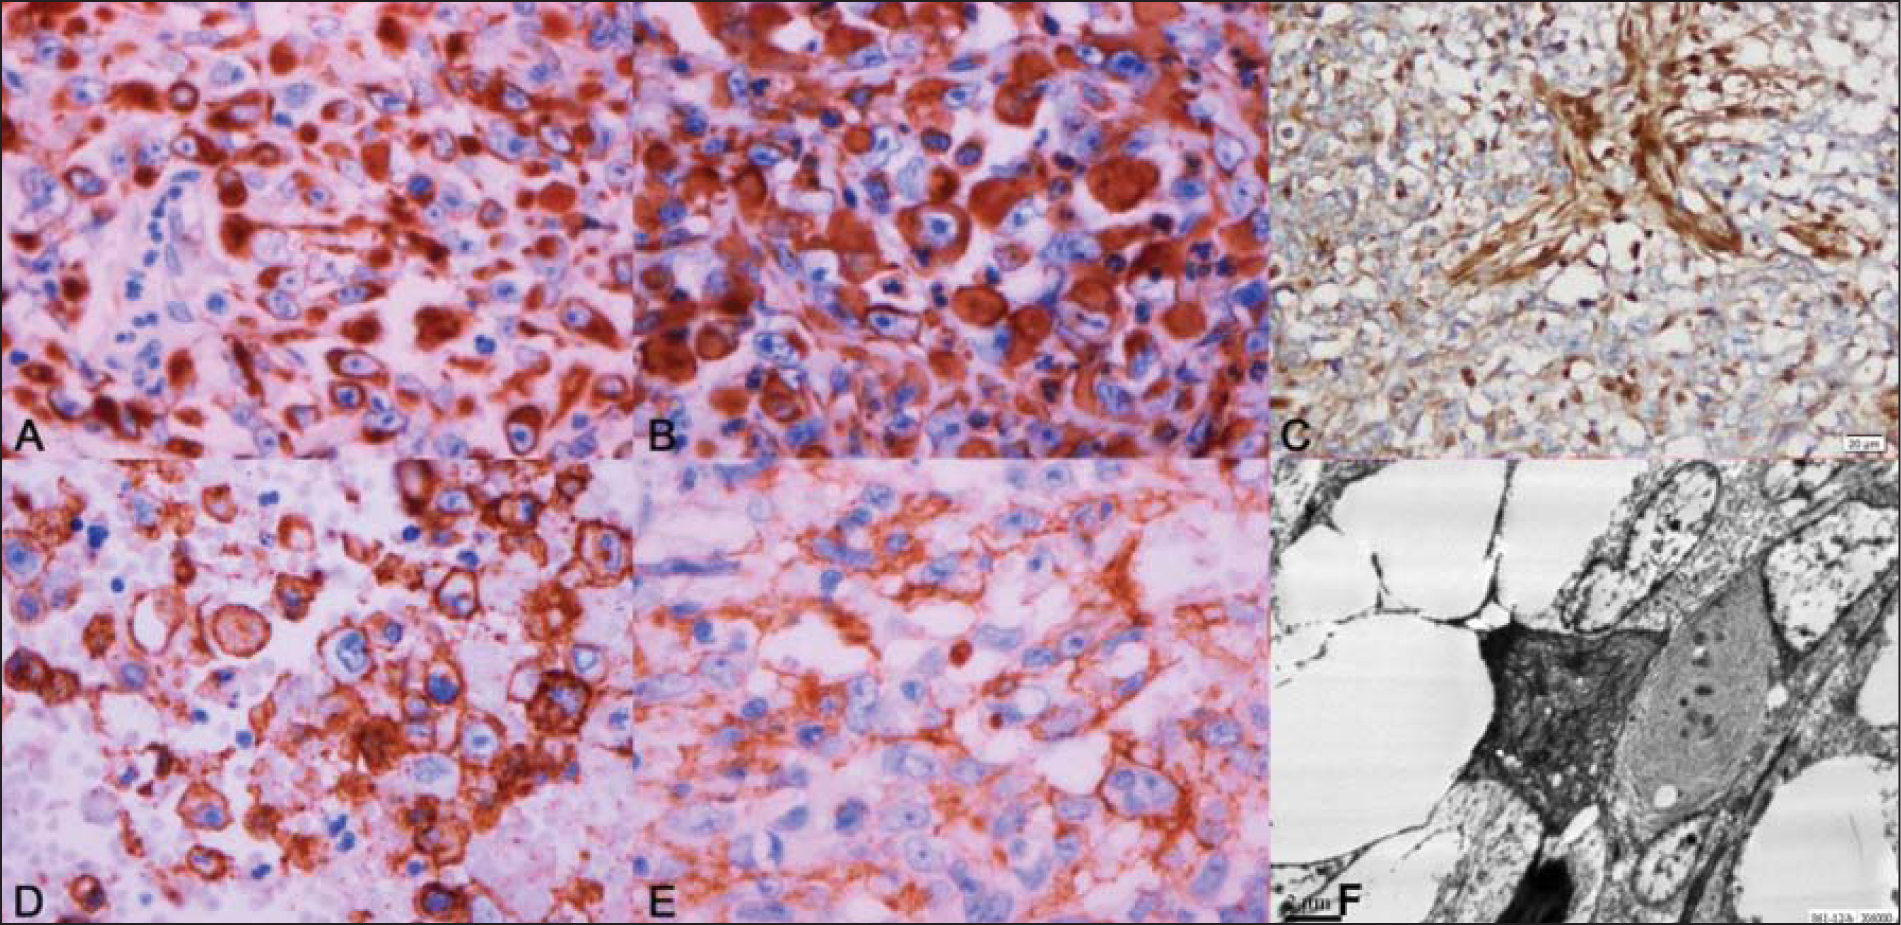 Immunohistochemical staining. (A) Strong immunoreactivity of tumor cells for cytokeratin (original magnification ×400) and (B) vimentin (original magnification ×400). (C) INI1 staining showing positive staining in the endothelial cells and loss of immunoreactivity in rhabdoid tumor cells (original magnification ×400). (D) CD34 immunoreactivity in tumor cells (original magnification ×400). (E) Focal immunoreactivity for epithelial membrane antigen (original magnification ×400). (F) Electron microscopic photograph showing inclusions composed of arrays and whorls of intermediate filaments amidst a few ill-defined mitochondria (original magnification ×6,000).